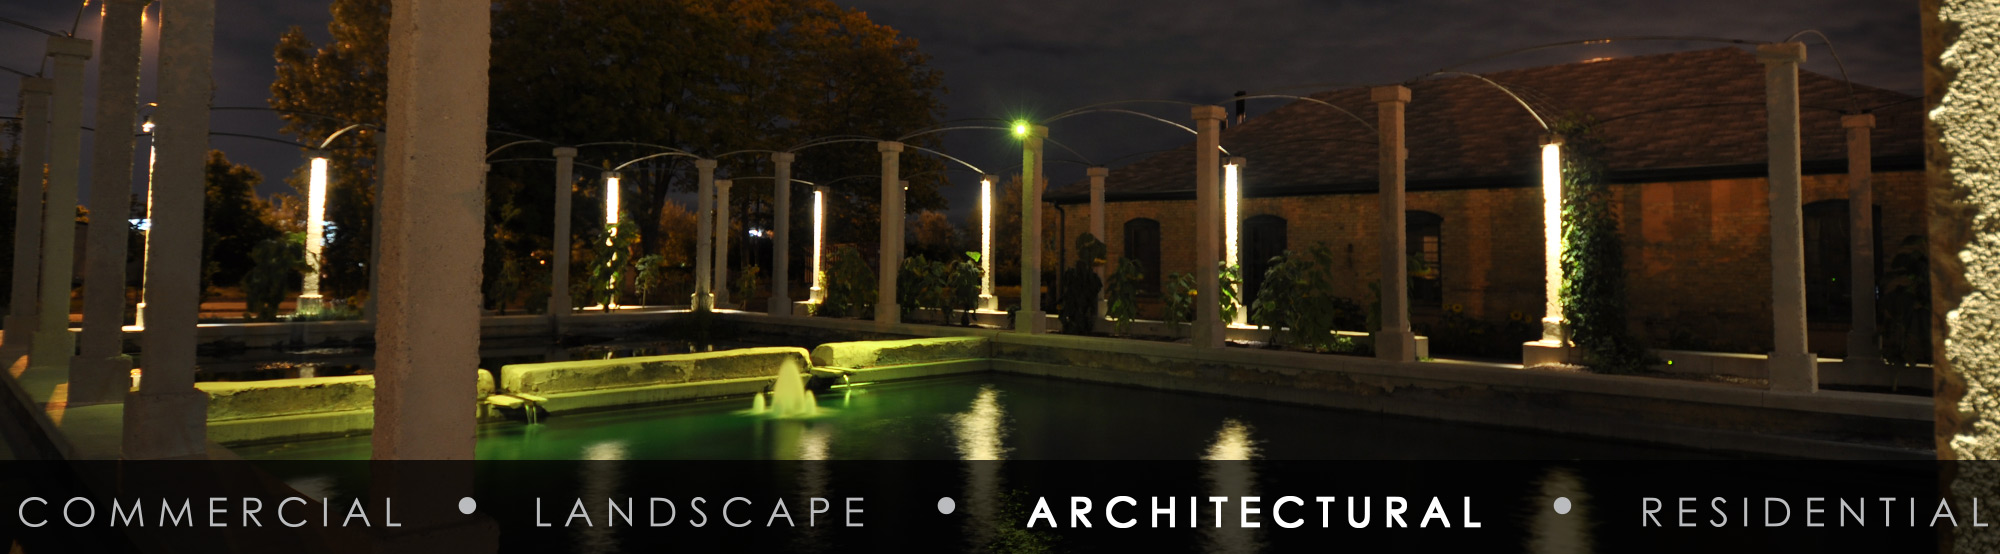 Emphasize Architectural elements & SGi Lighting azcodes.com